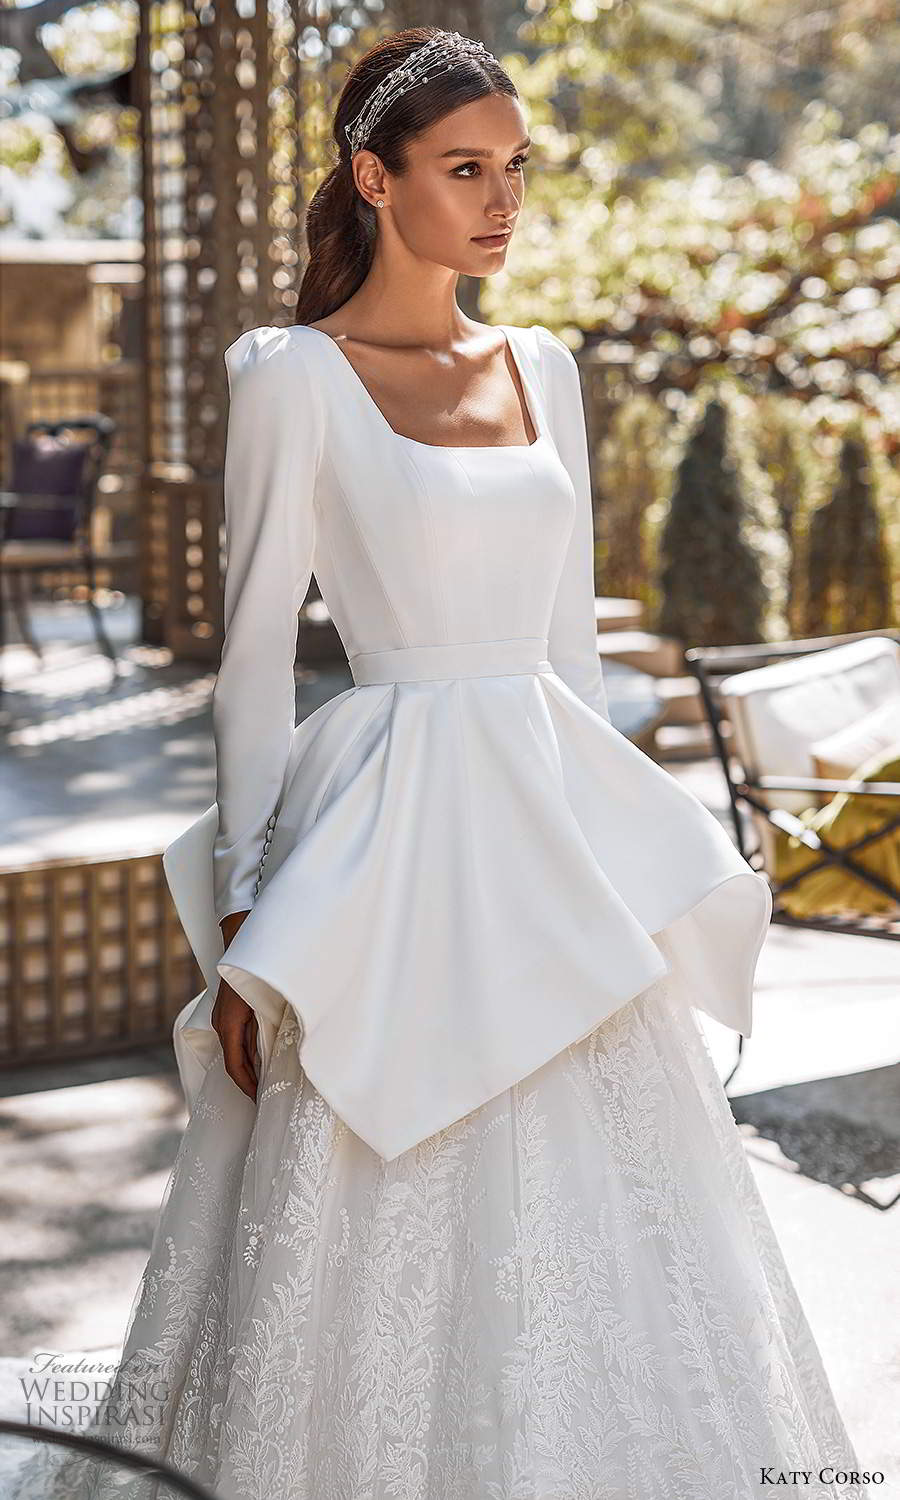 katy corso 2021 bridal long puff sleeves square neckline clean bodice embellished lace skirt peplum a line ball gown wedding dress chapel train (5) zv